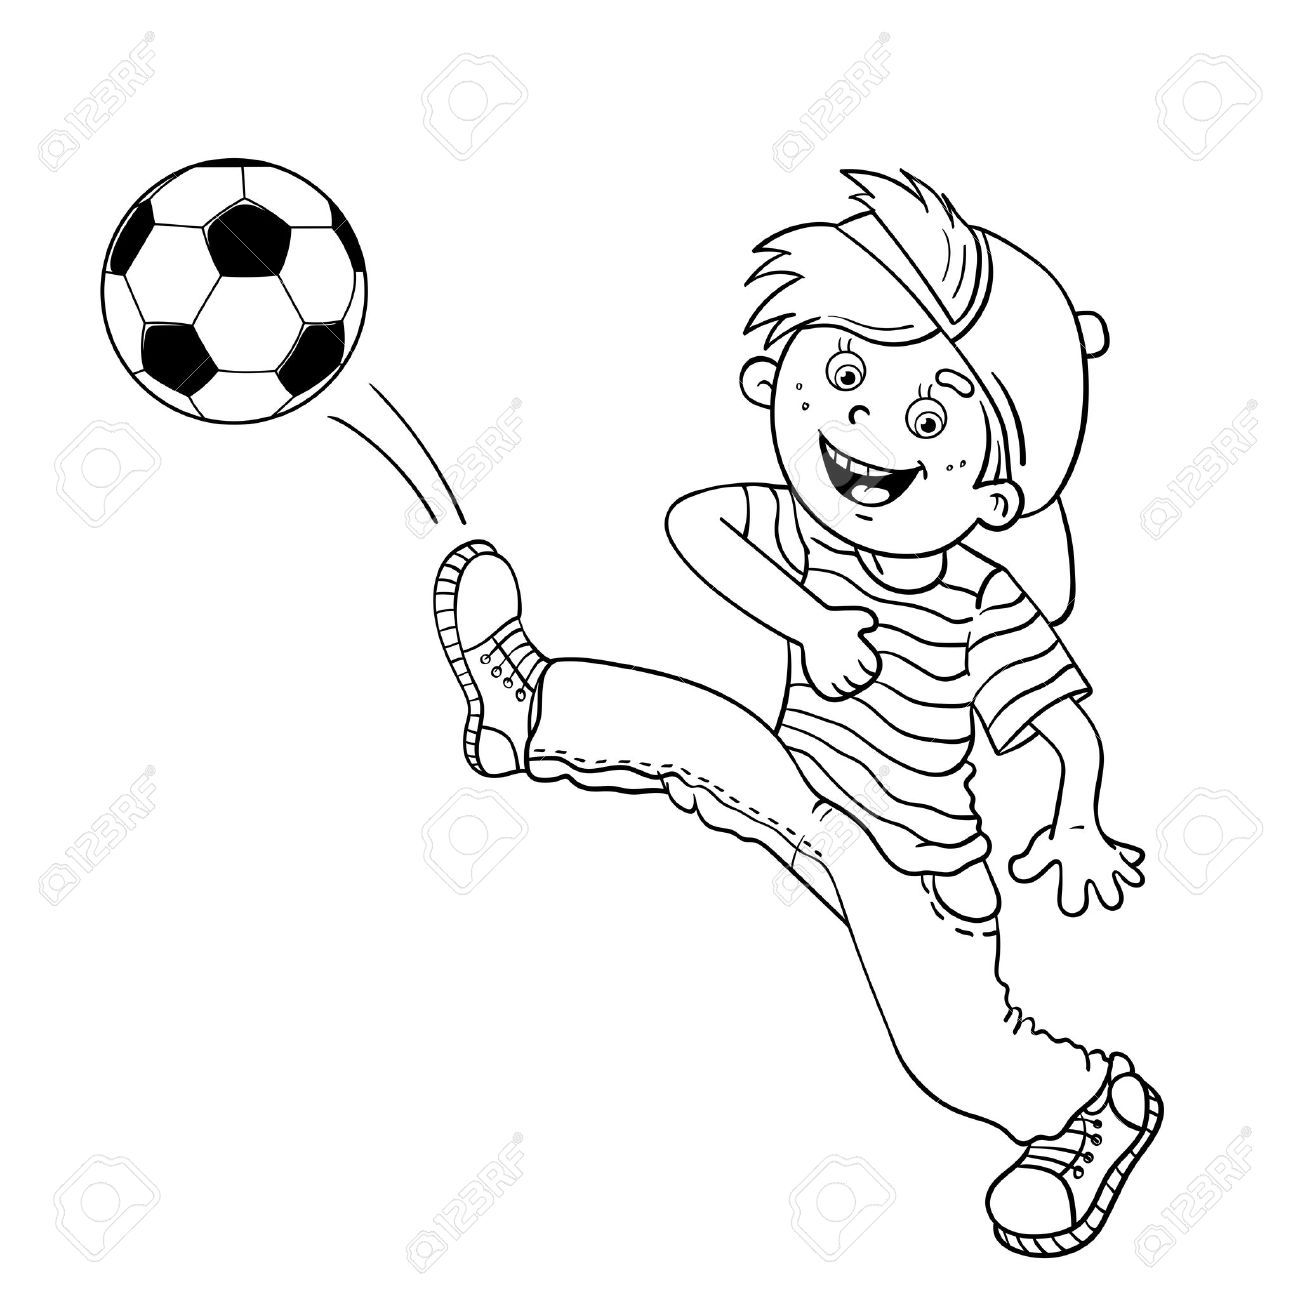 Small Soccer Ball Drawing At Getdrawings Com Free For Personal Use Small Soccer Ball Drawing Sports Coloring Pages Coloring Pages Ball Drawing